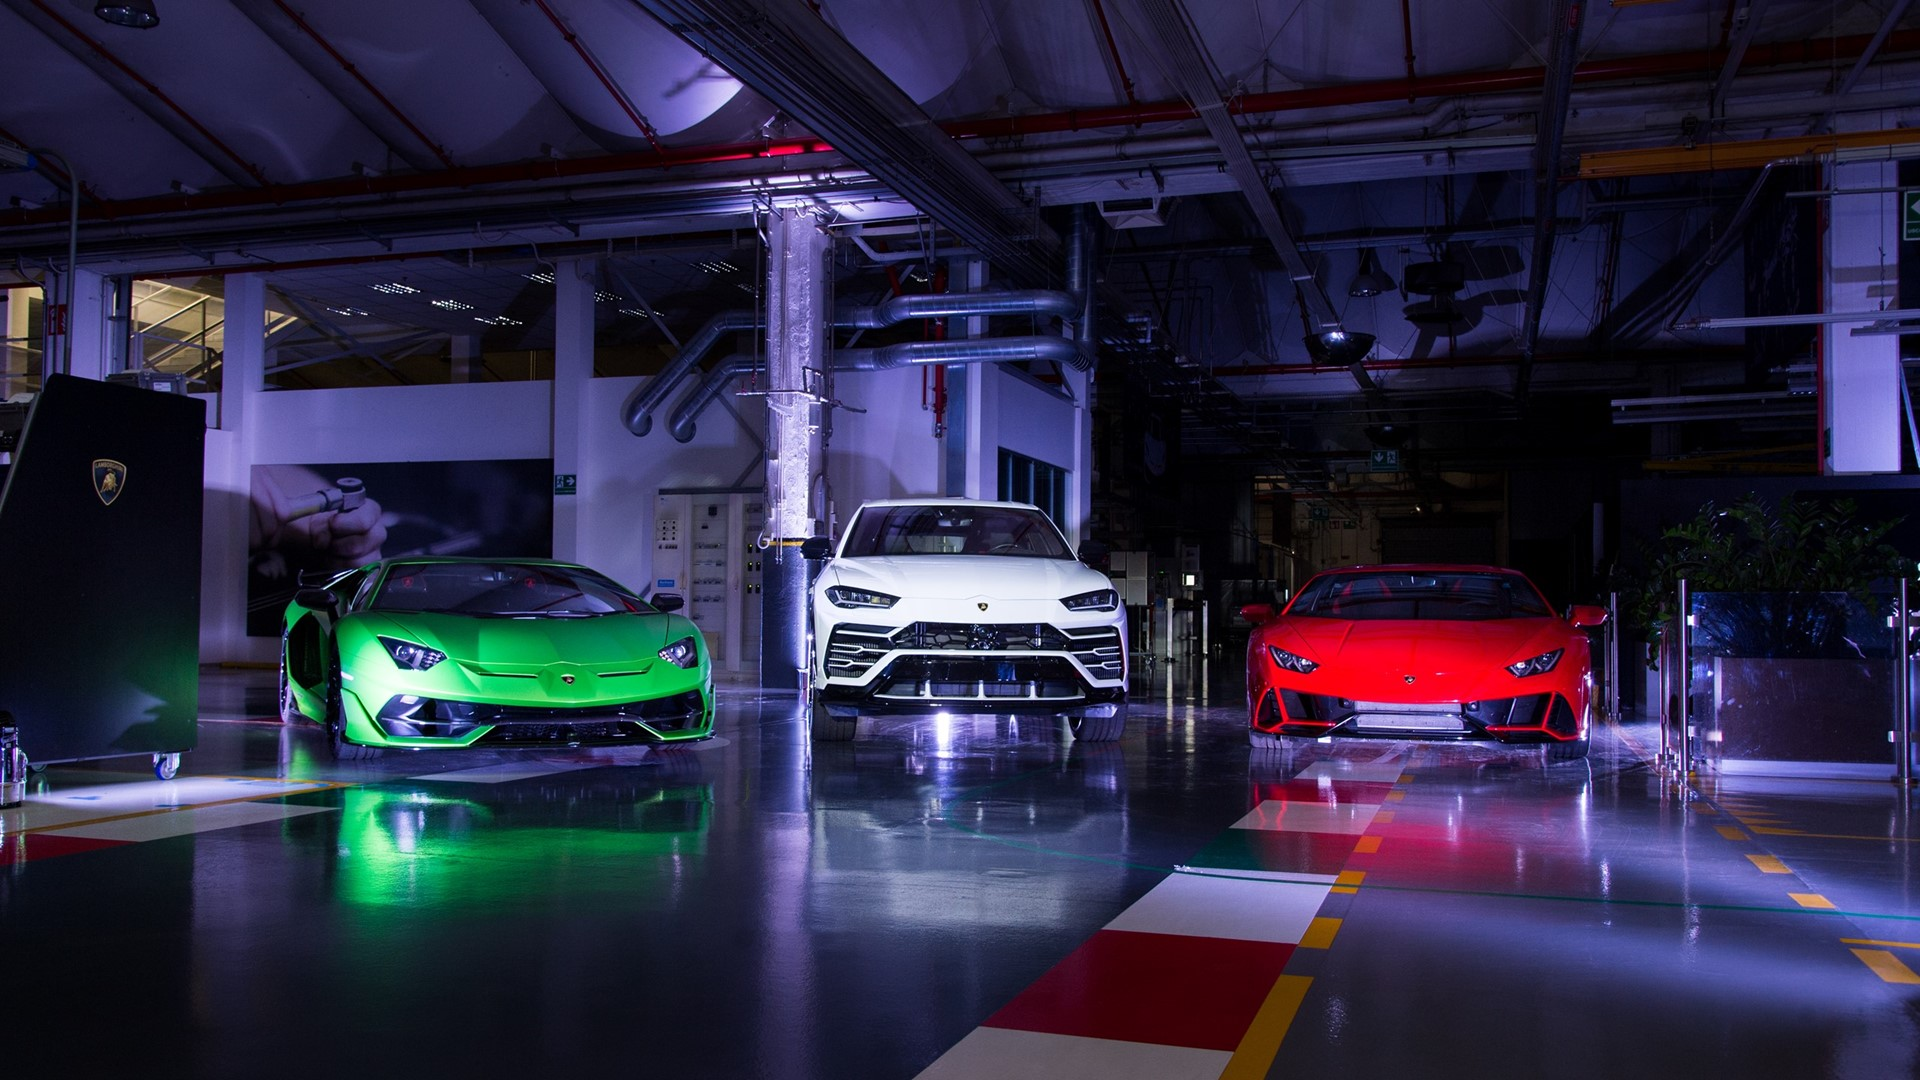 """Automobili Lamborghini launches project: """"With Italy, For Italy"""" 20 Italian photographers for 20 regions, plus a cameo by Letizia Battaglia for Palermo, in support of Italy - Image 1"""